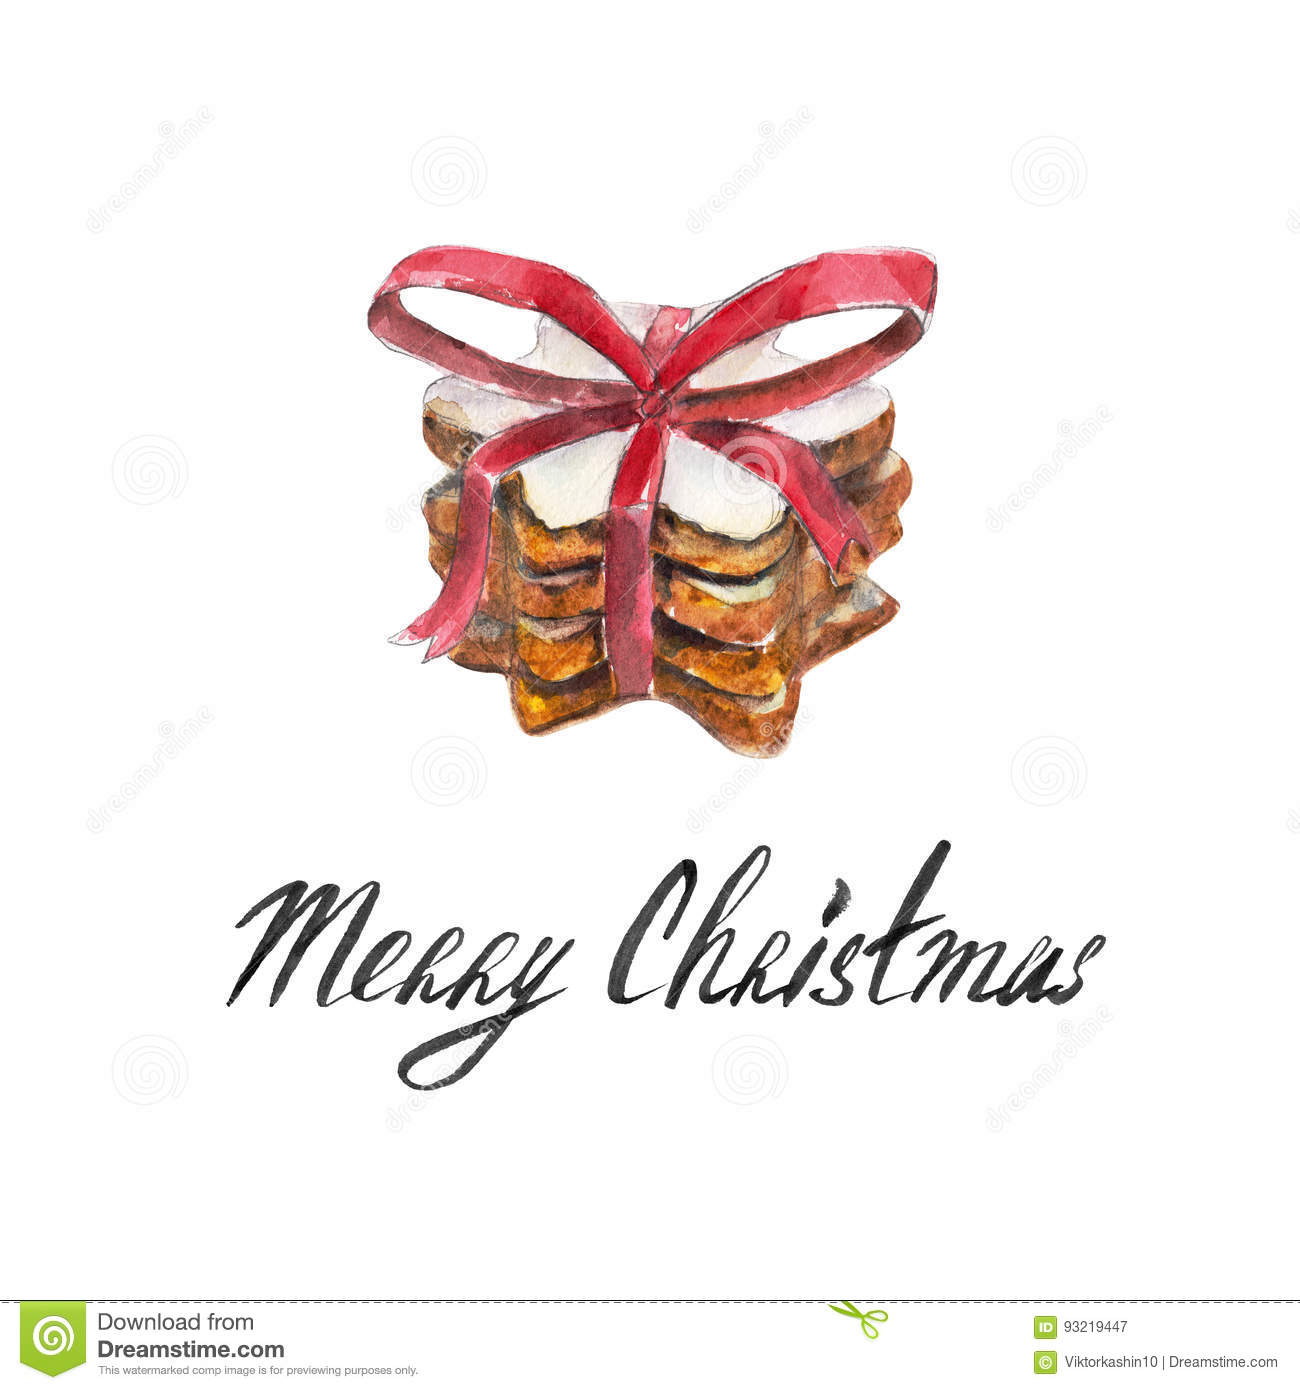 The cookies stack with red ribbon, bow isolated on white background and lettering `Merry Christmas`, watercolor illustration.